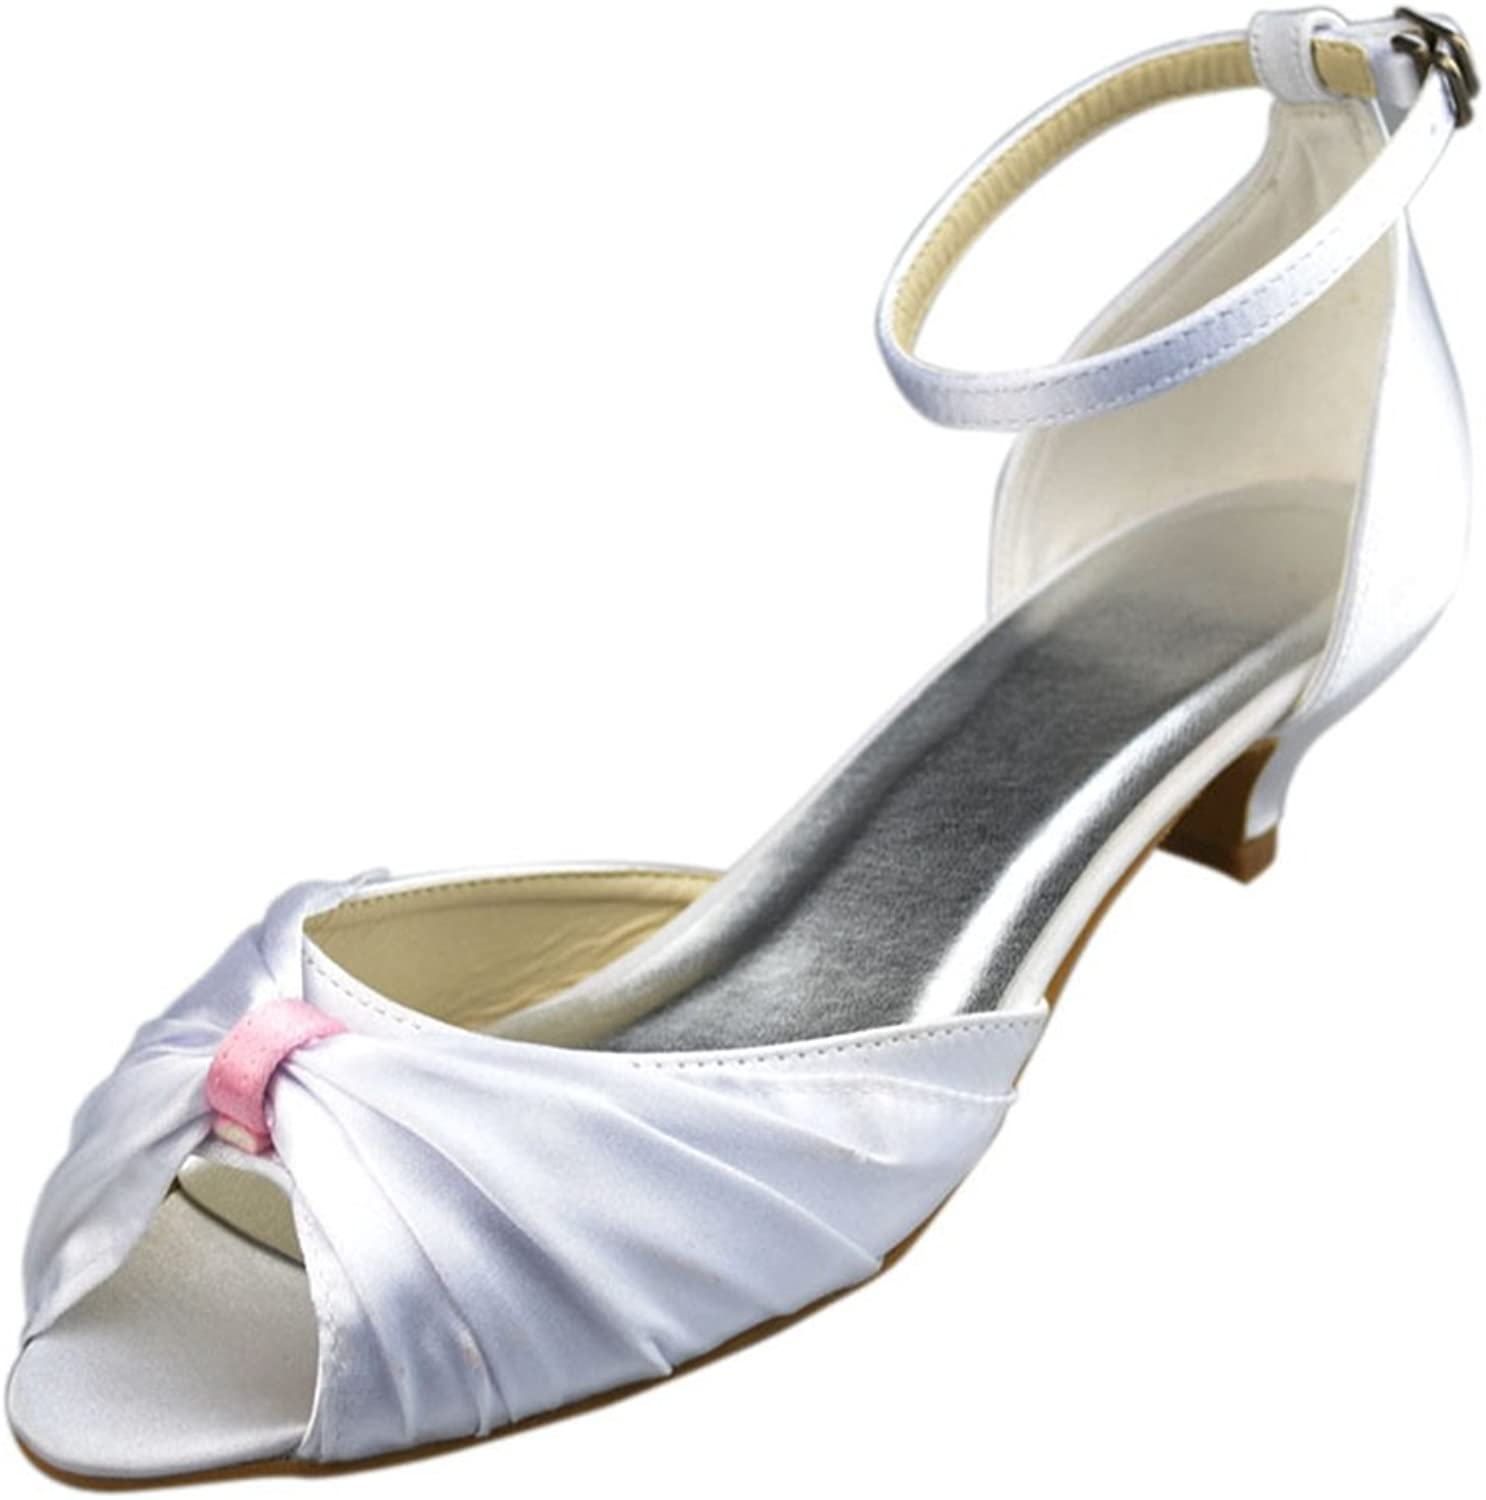 Minishion Womens Low Heel Satin Evening Party Bridal Wedding Strappy shoes Sandals